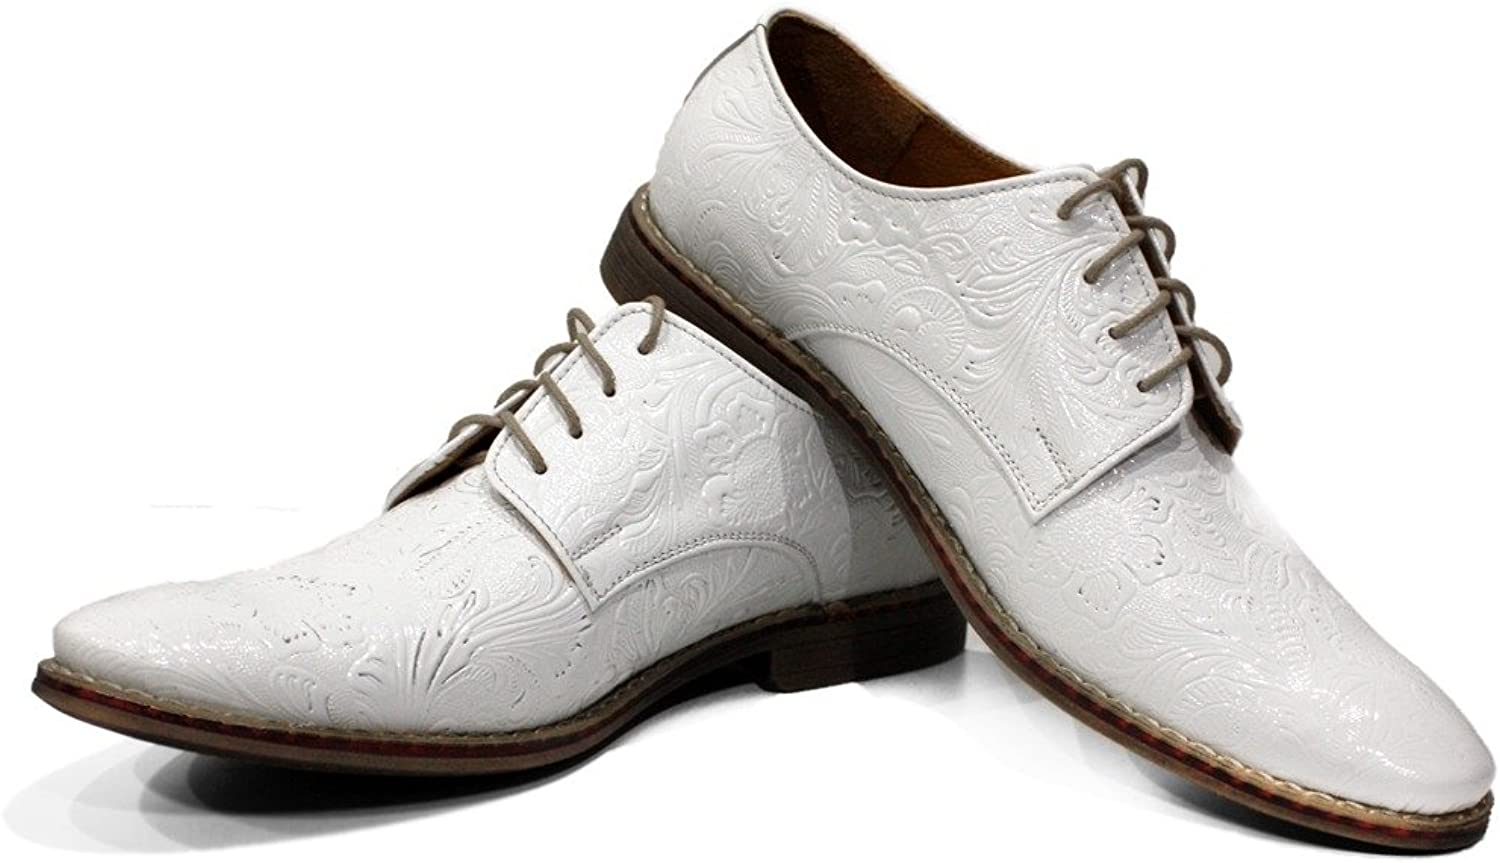 Modello Chalk - Handmade Italian Leather Mens color White Oxfords Dress shoes - Cowhide Embossed Leather - Lace-Up